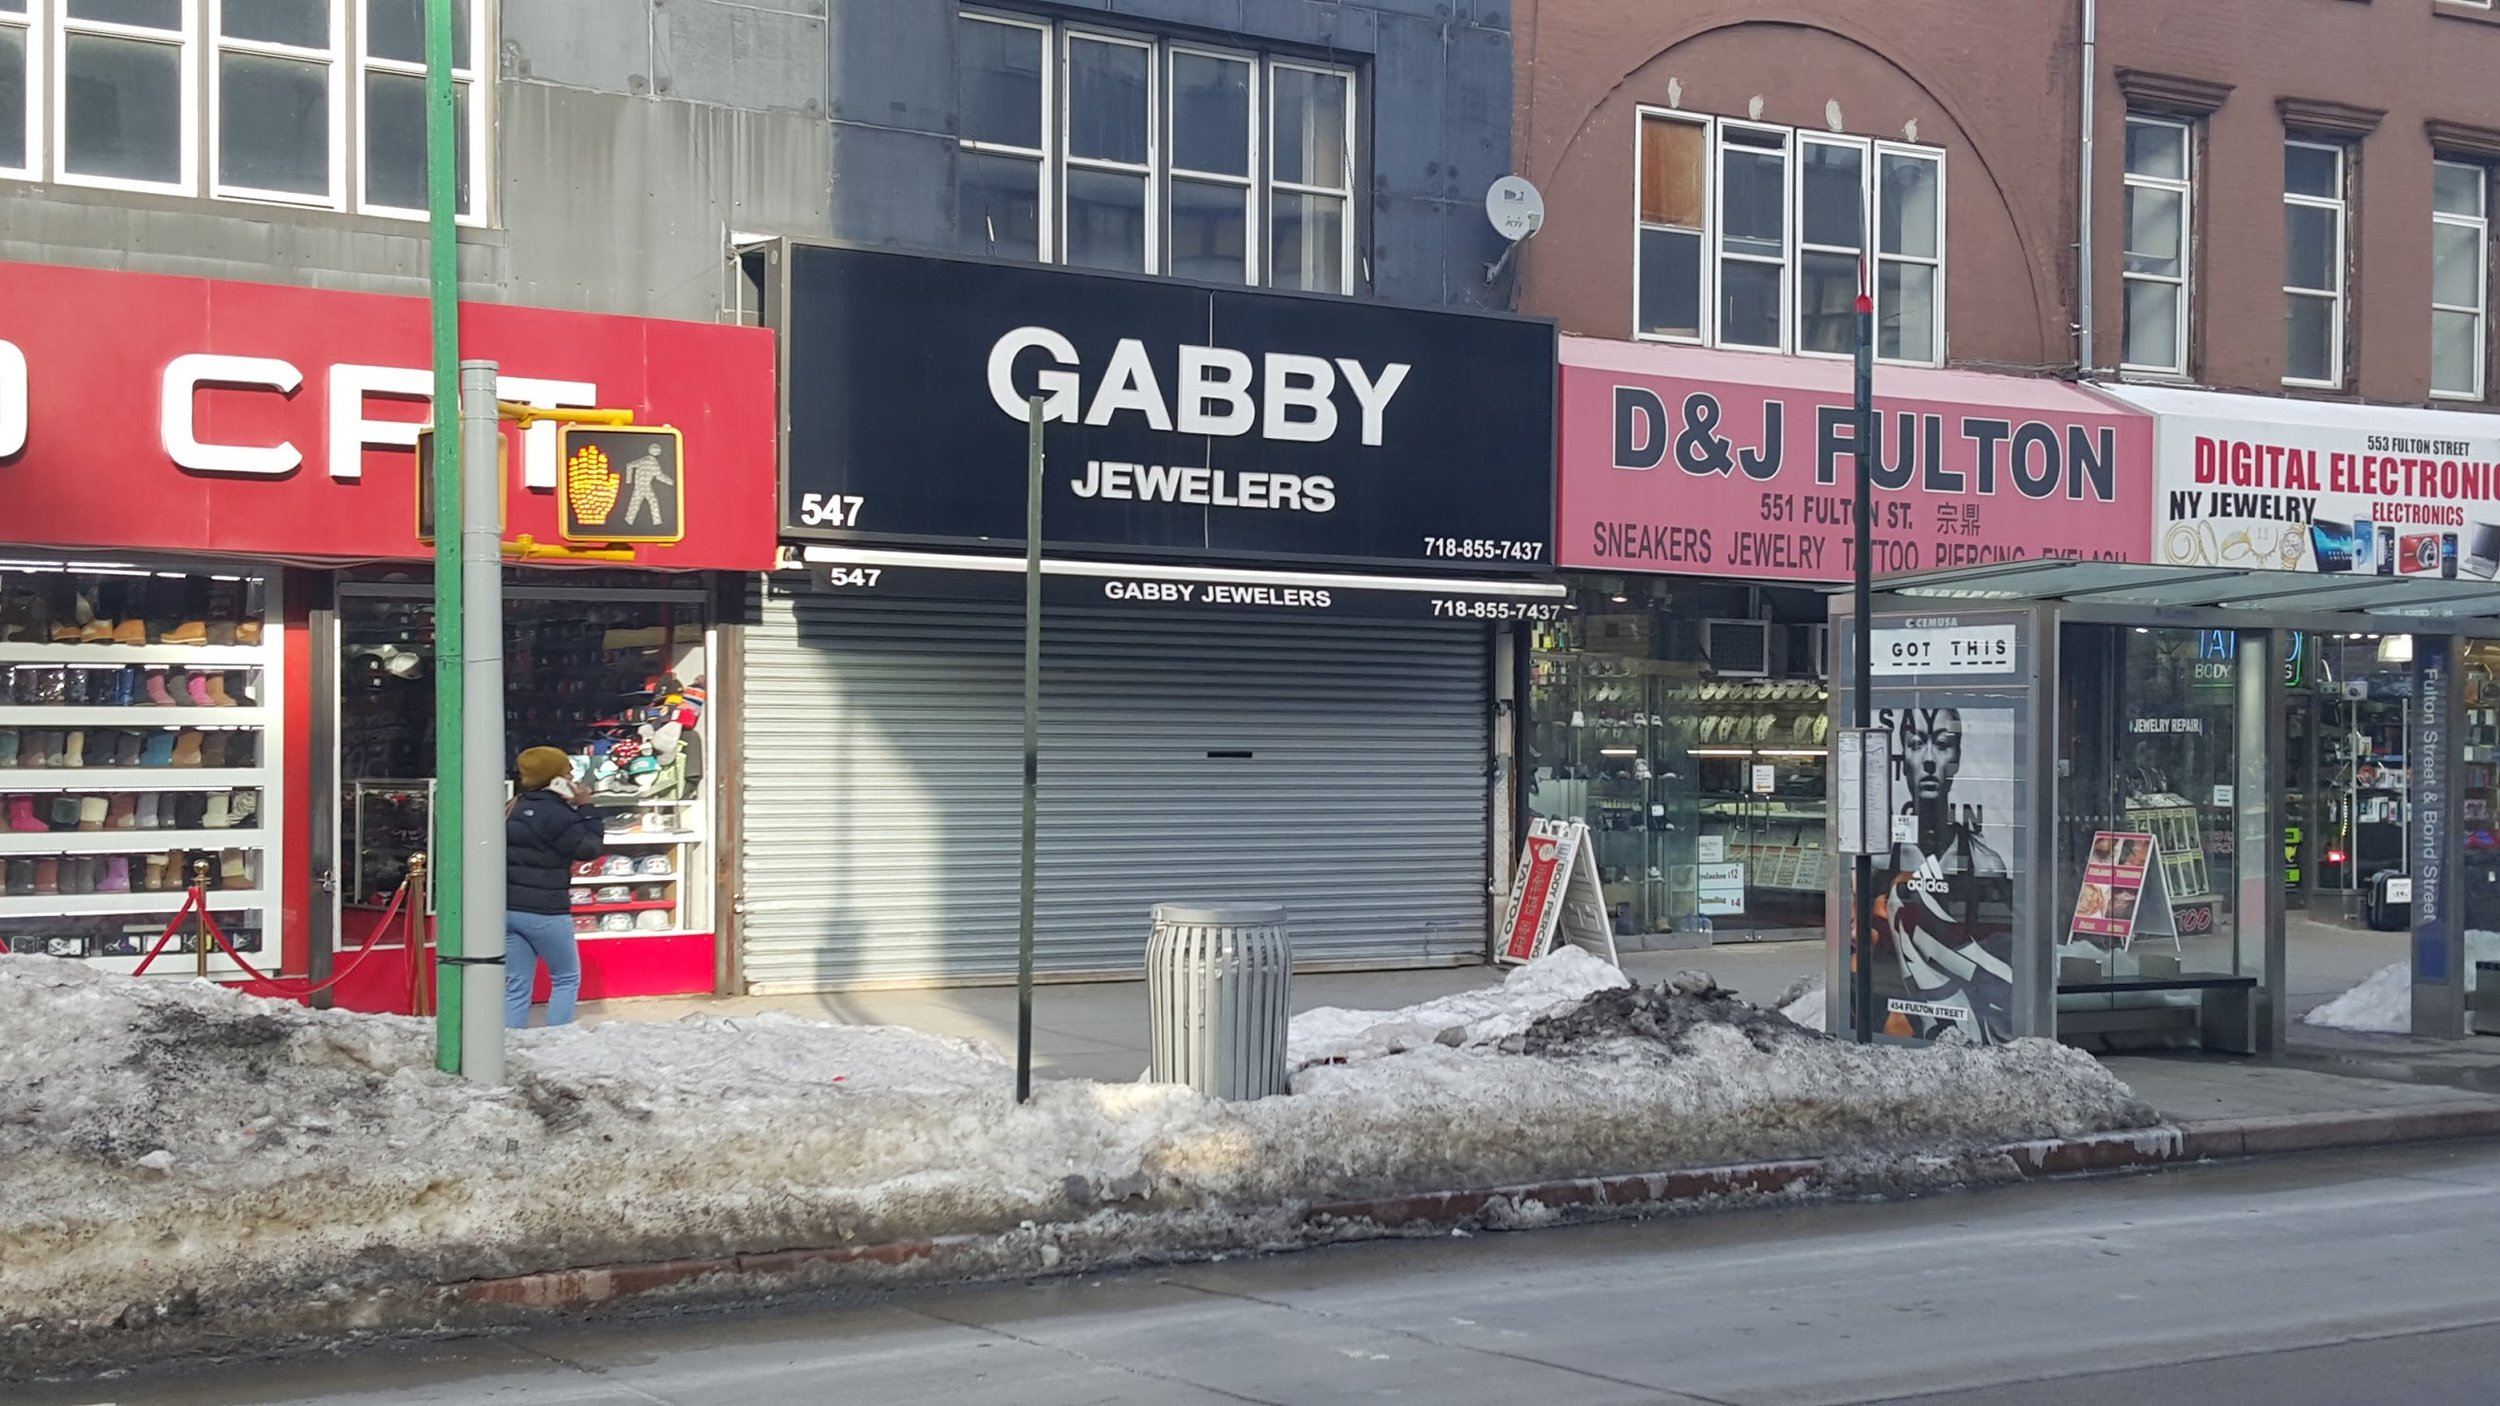 Small commercial tenants along the street in Brooklyn.